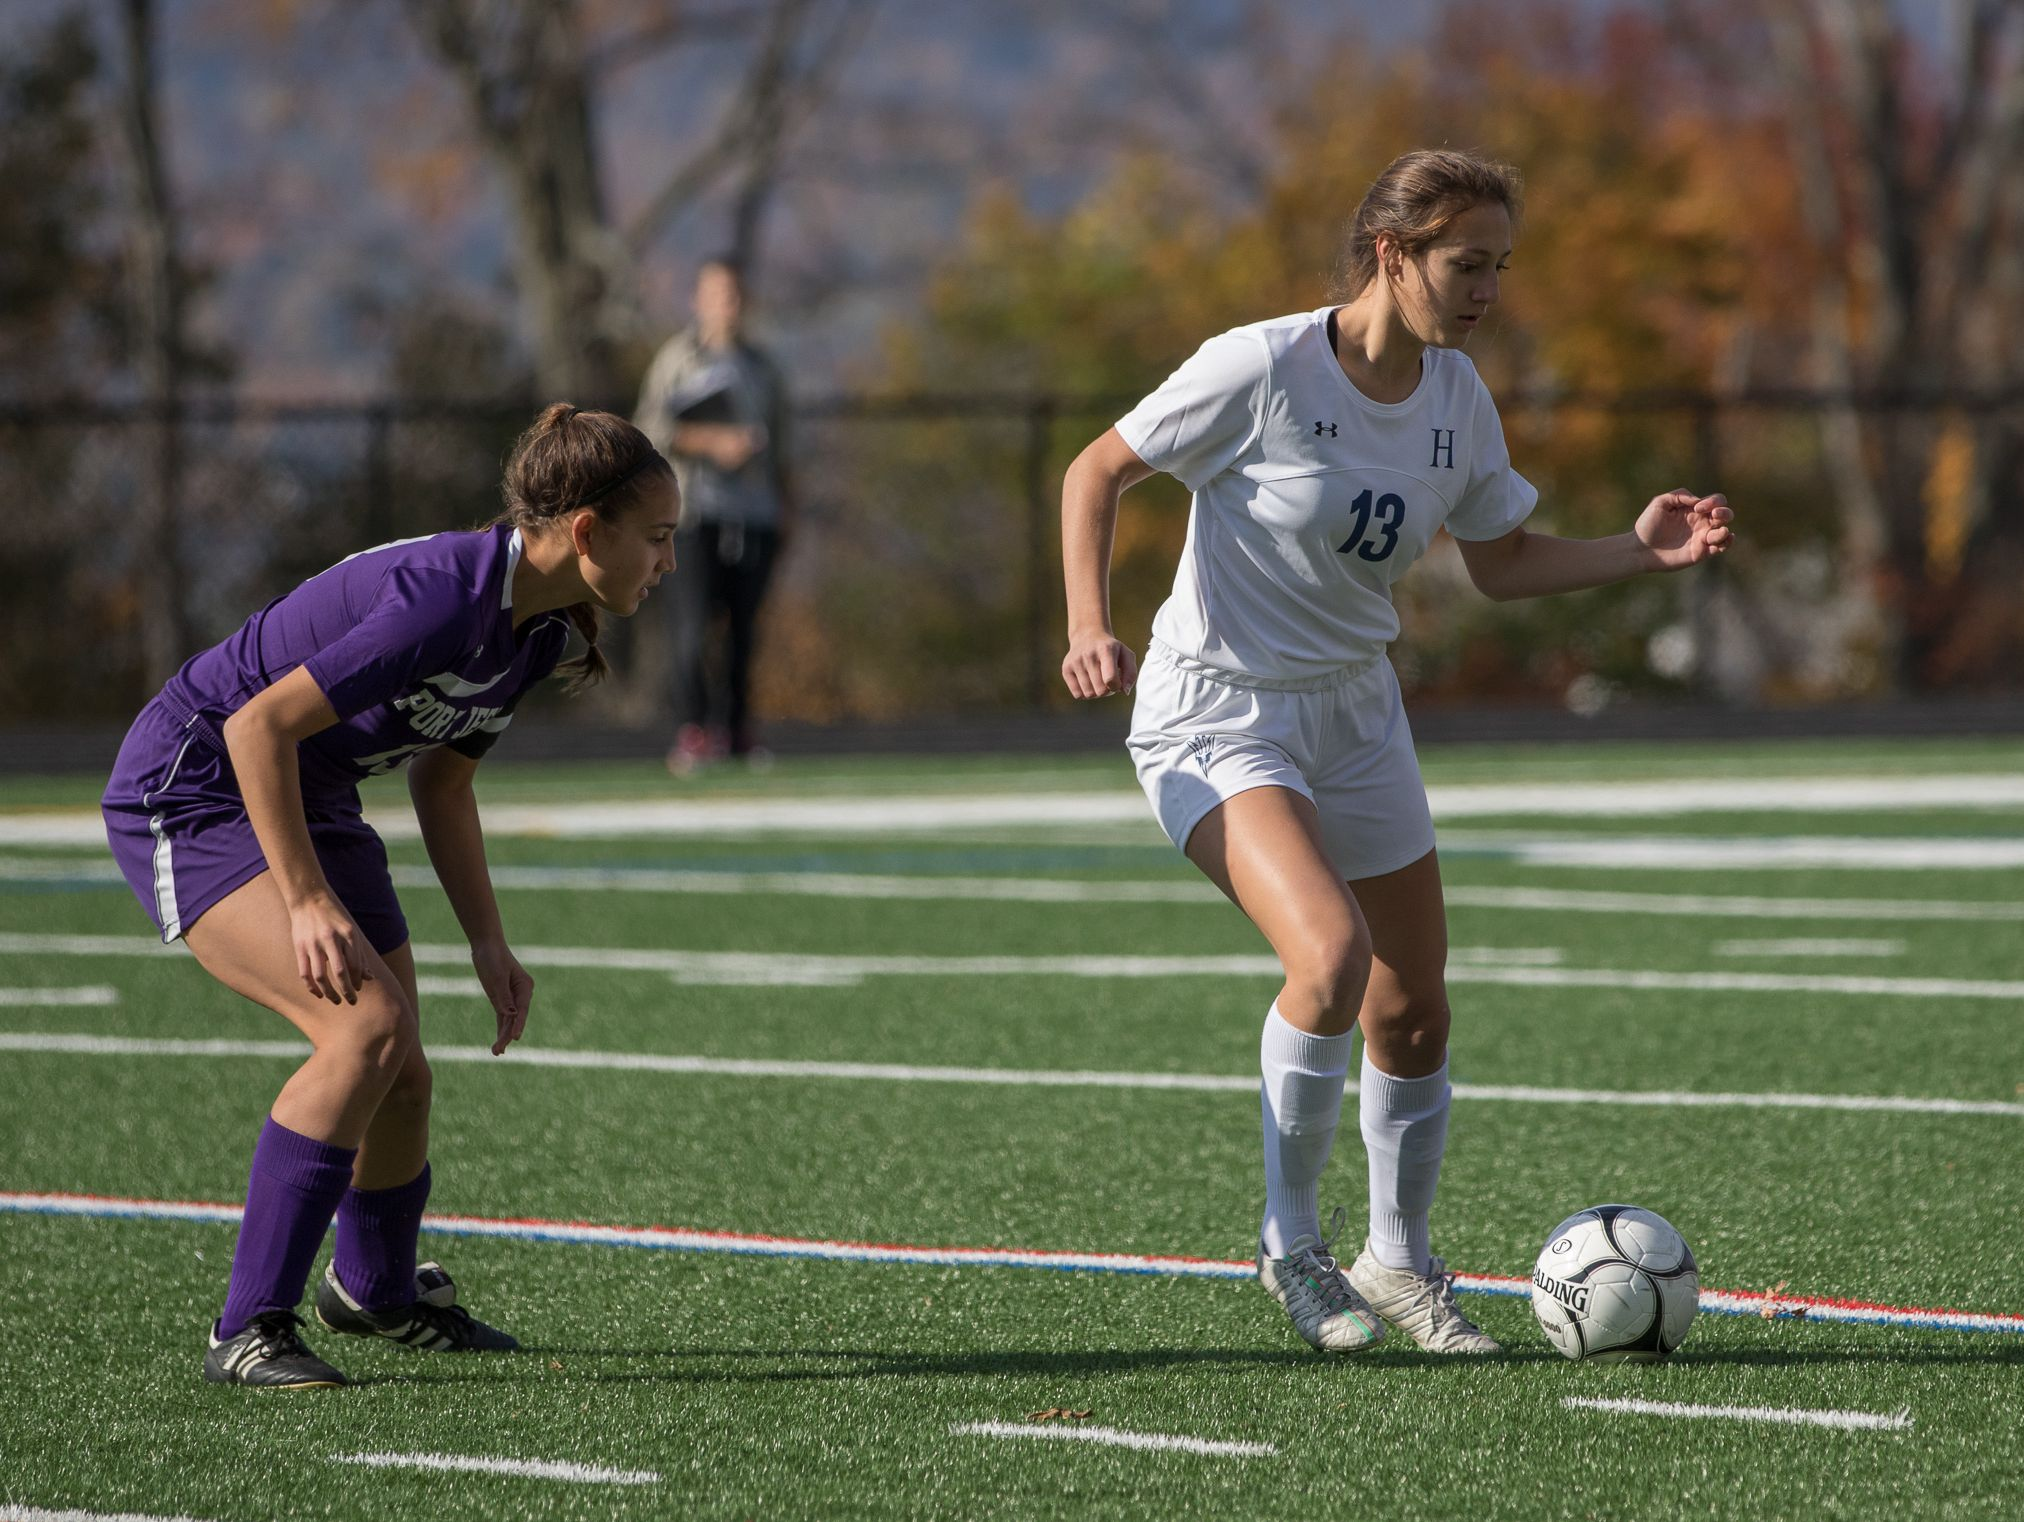 Allison Chiera, right, of Haldane tries to get past Corinne Scannell of Port Jefferson during a Class C girls soccer regional final on Saturday at Sleepy Hollow High School.